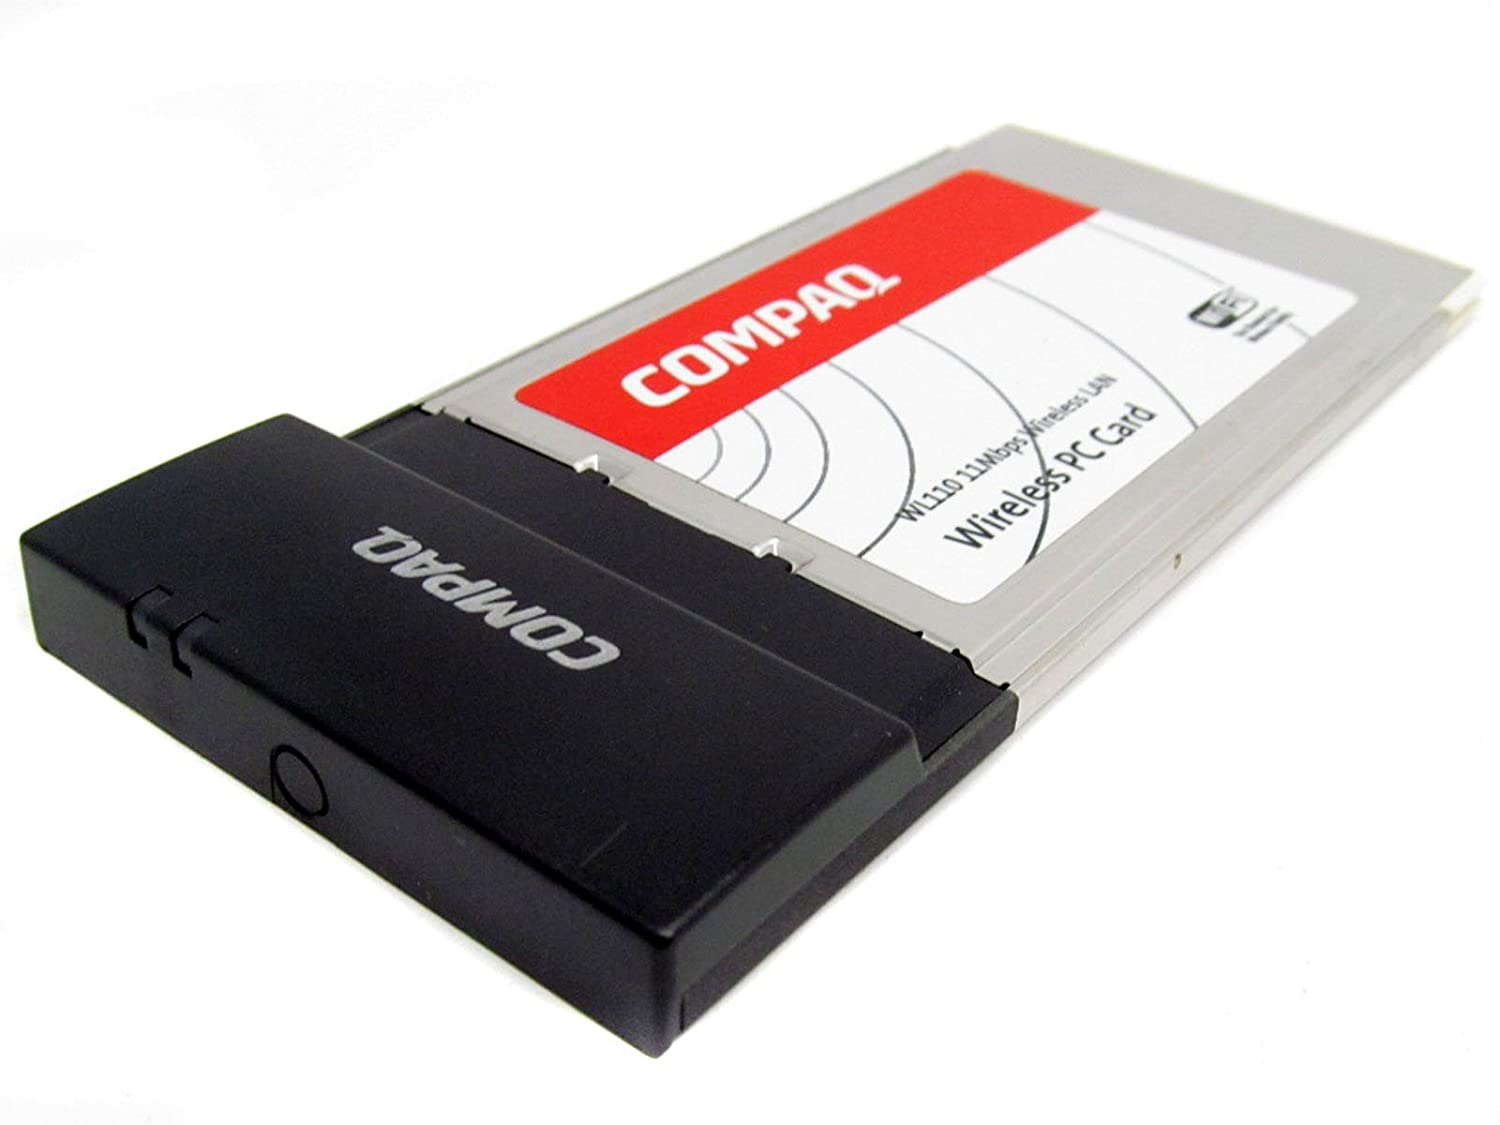 DRIVERS FOR WL110 WIRELESS PC CARD